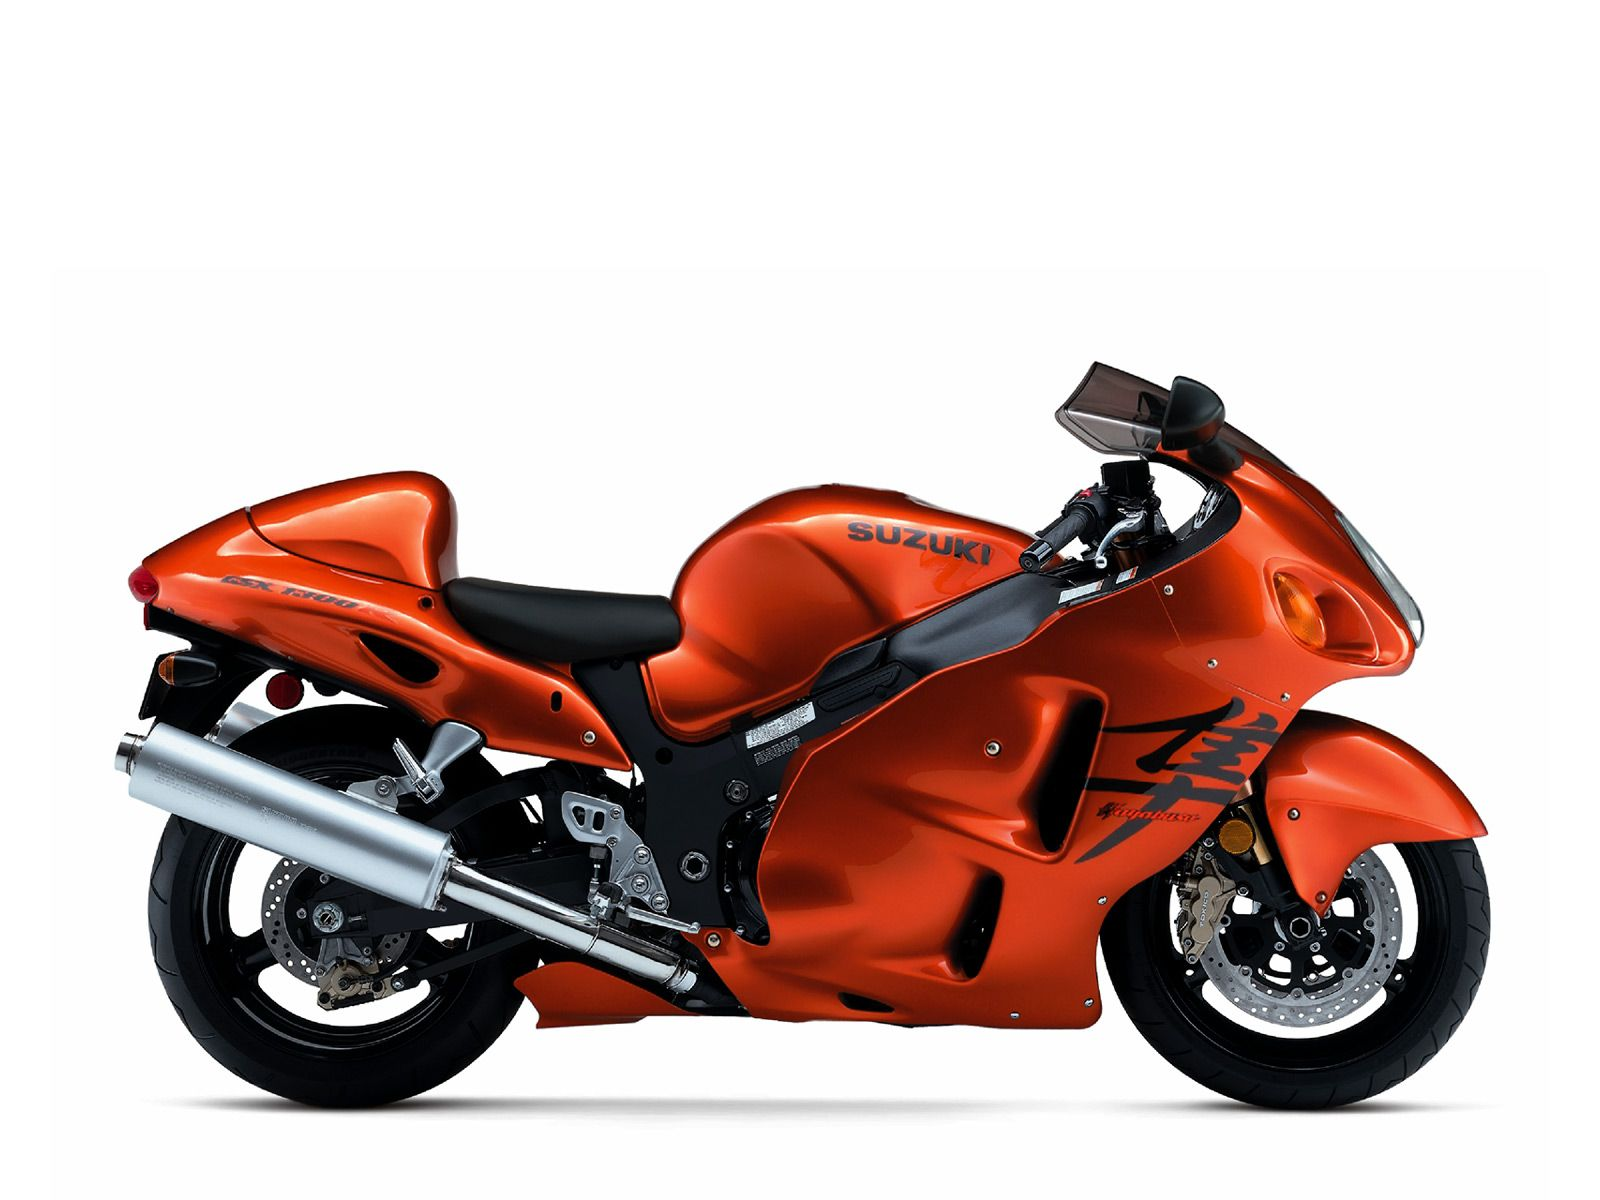 Orange motorcycle suzuki hayabusa gsx 1300 r sexy bike i swear